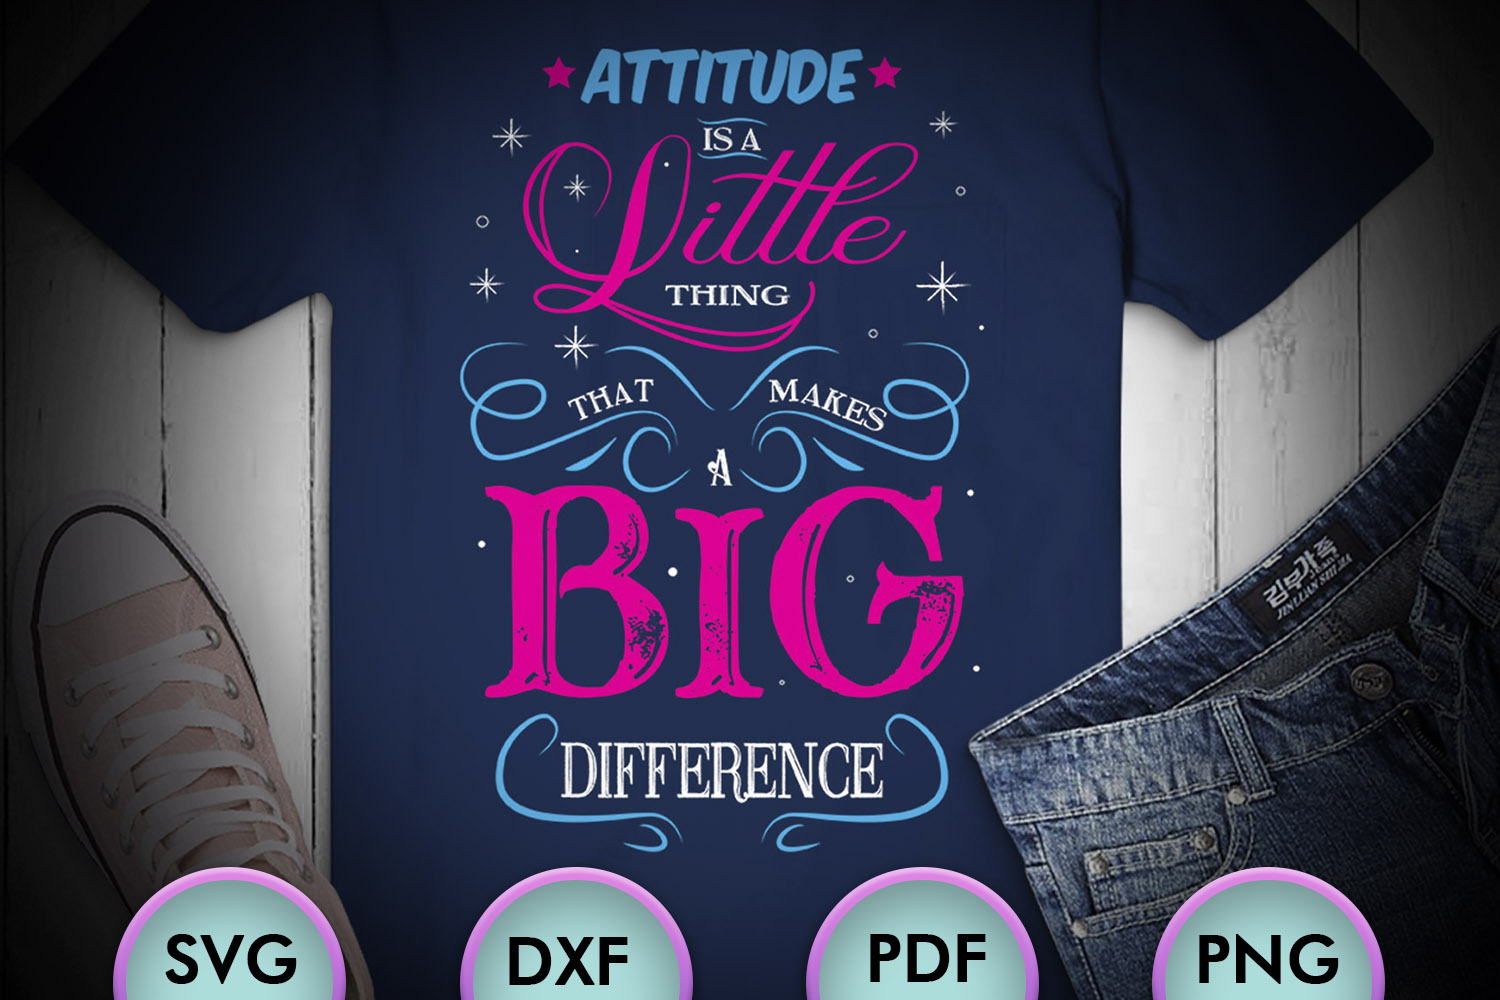 ATTITUDE IS A LITTLE THING... SVG Design example image 1